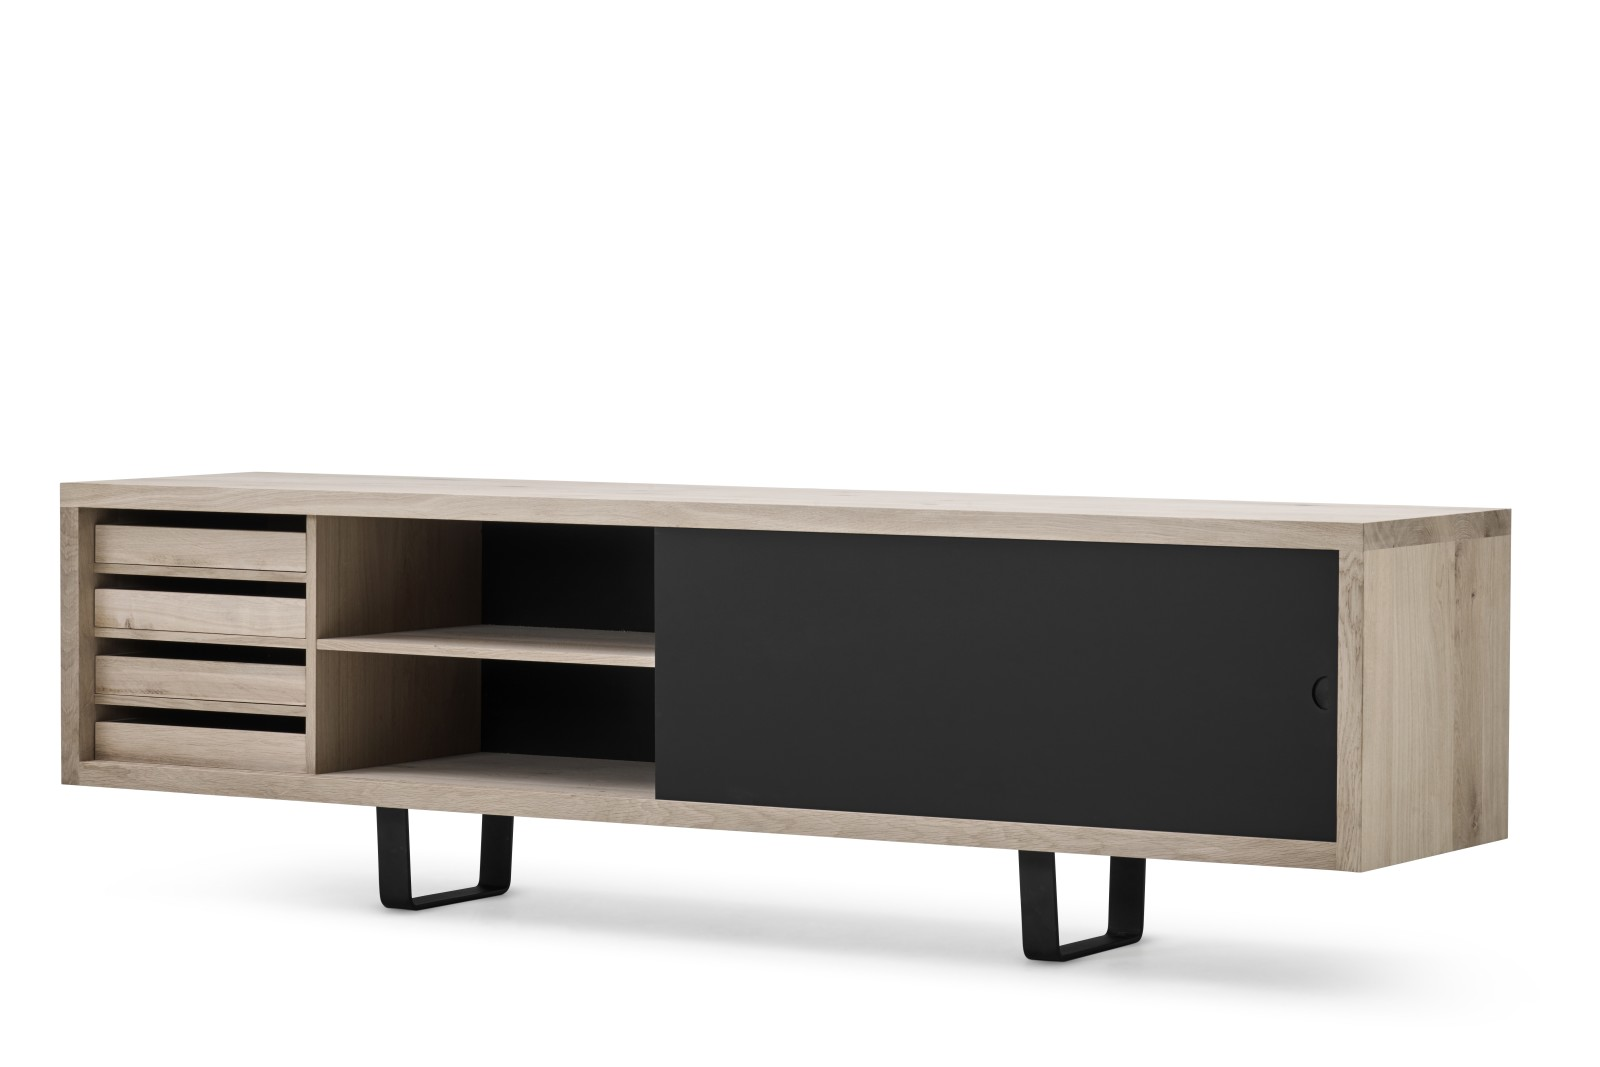 Grand Sideboard Oak Oil Treatment, Nano Black 0720, 240cm, Clear Lacquered Steel